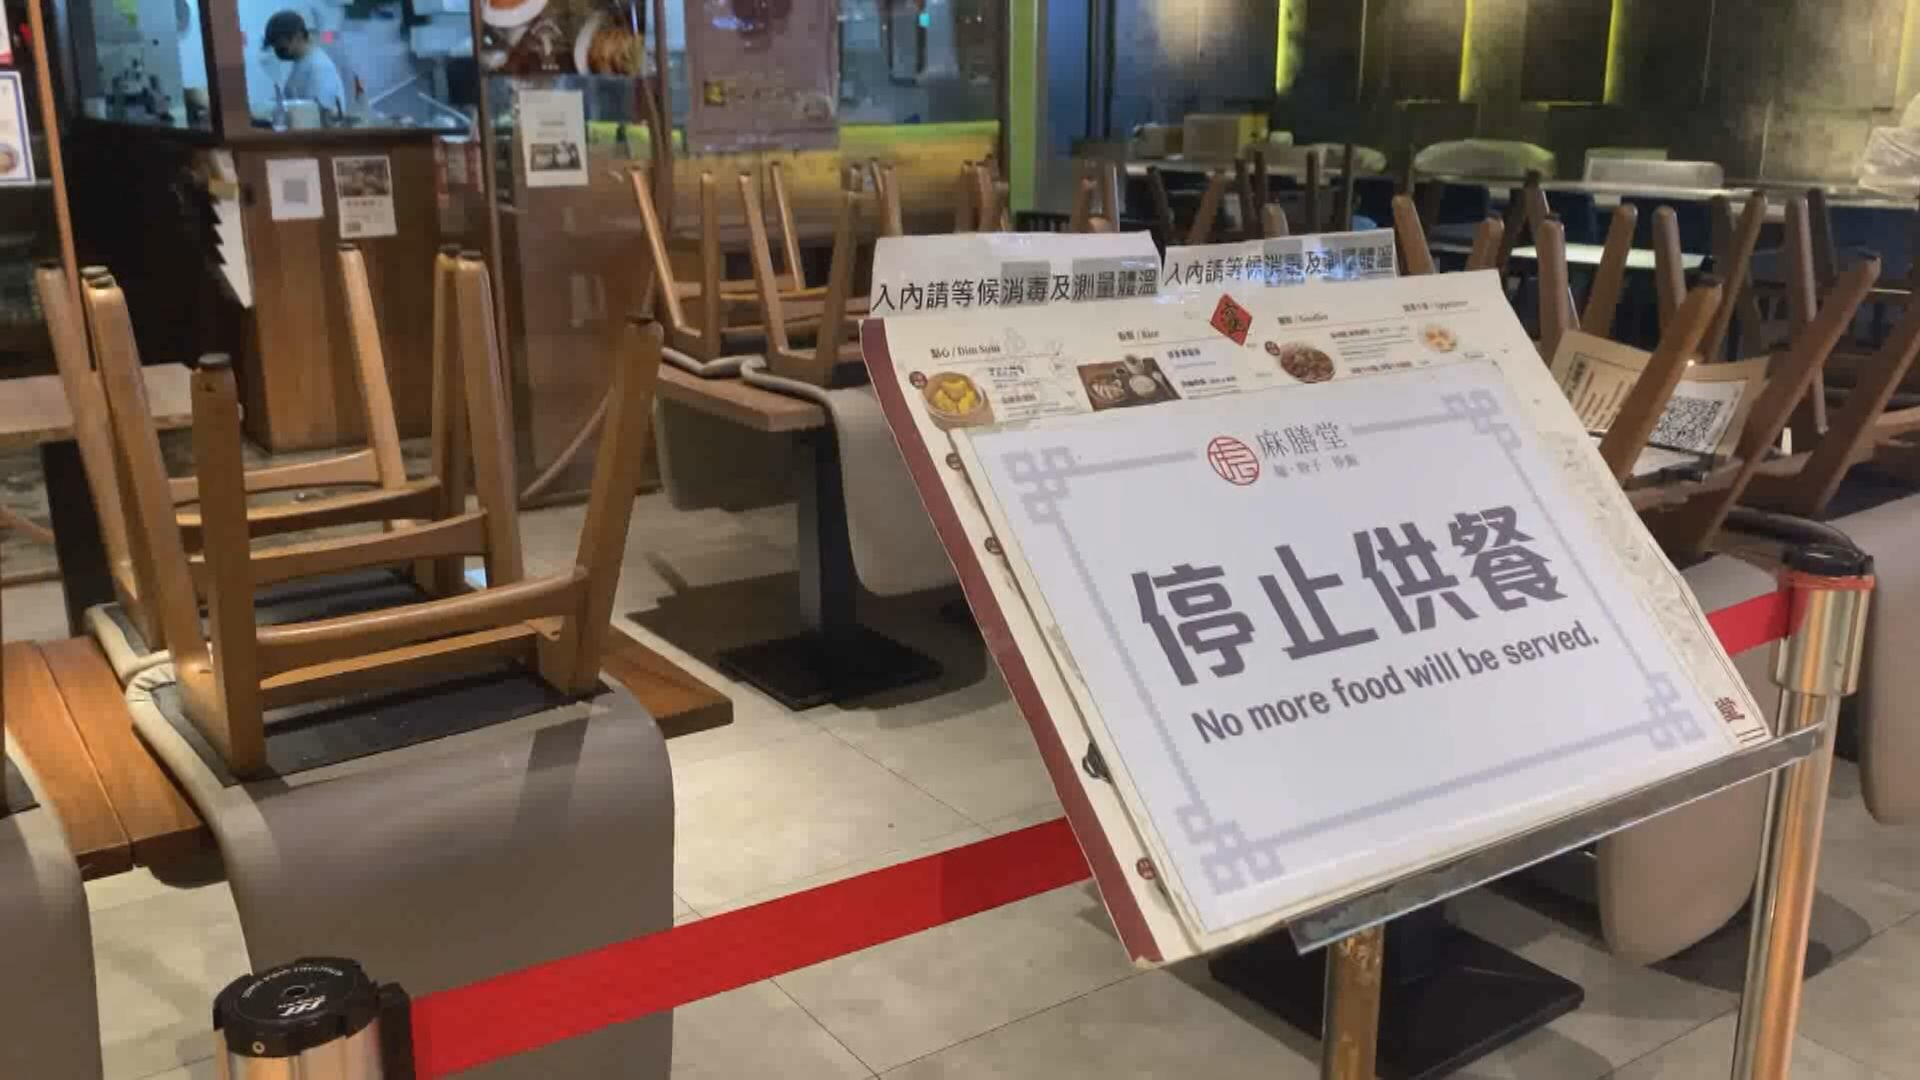 New Taipei Resumes On-site Dining Starting on Sept. 16 新北疫情趨緩 侯友宜宣布9/16起餐廳可內用